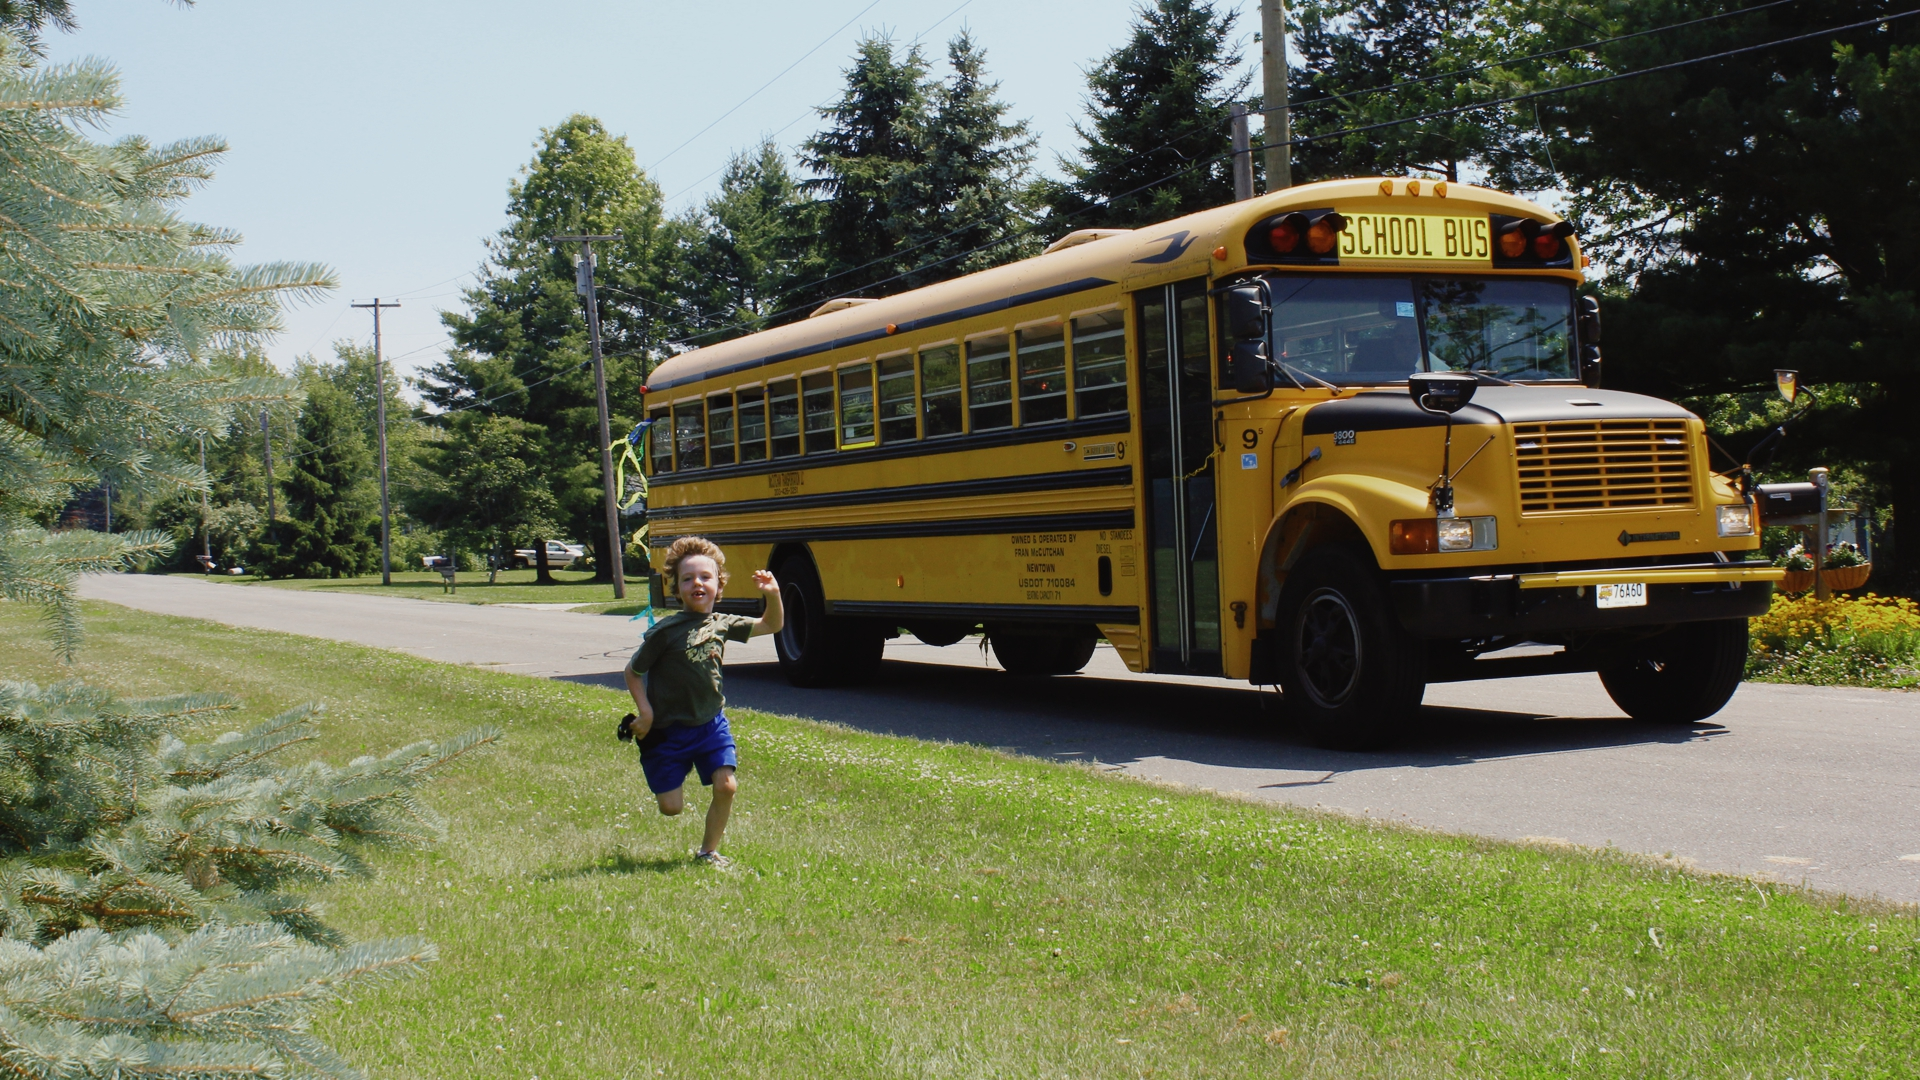 Mark Barden's son Daniel Barden races the school bus in Newtown